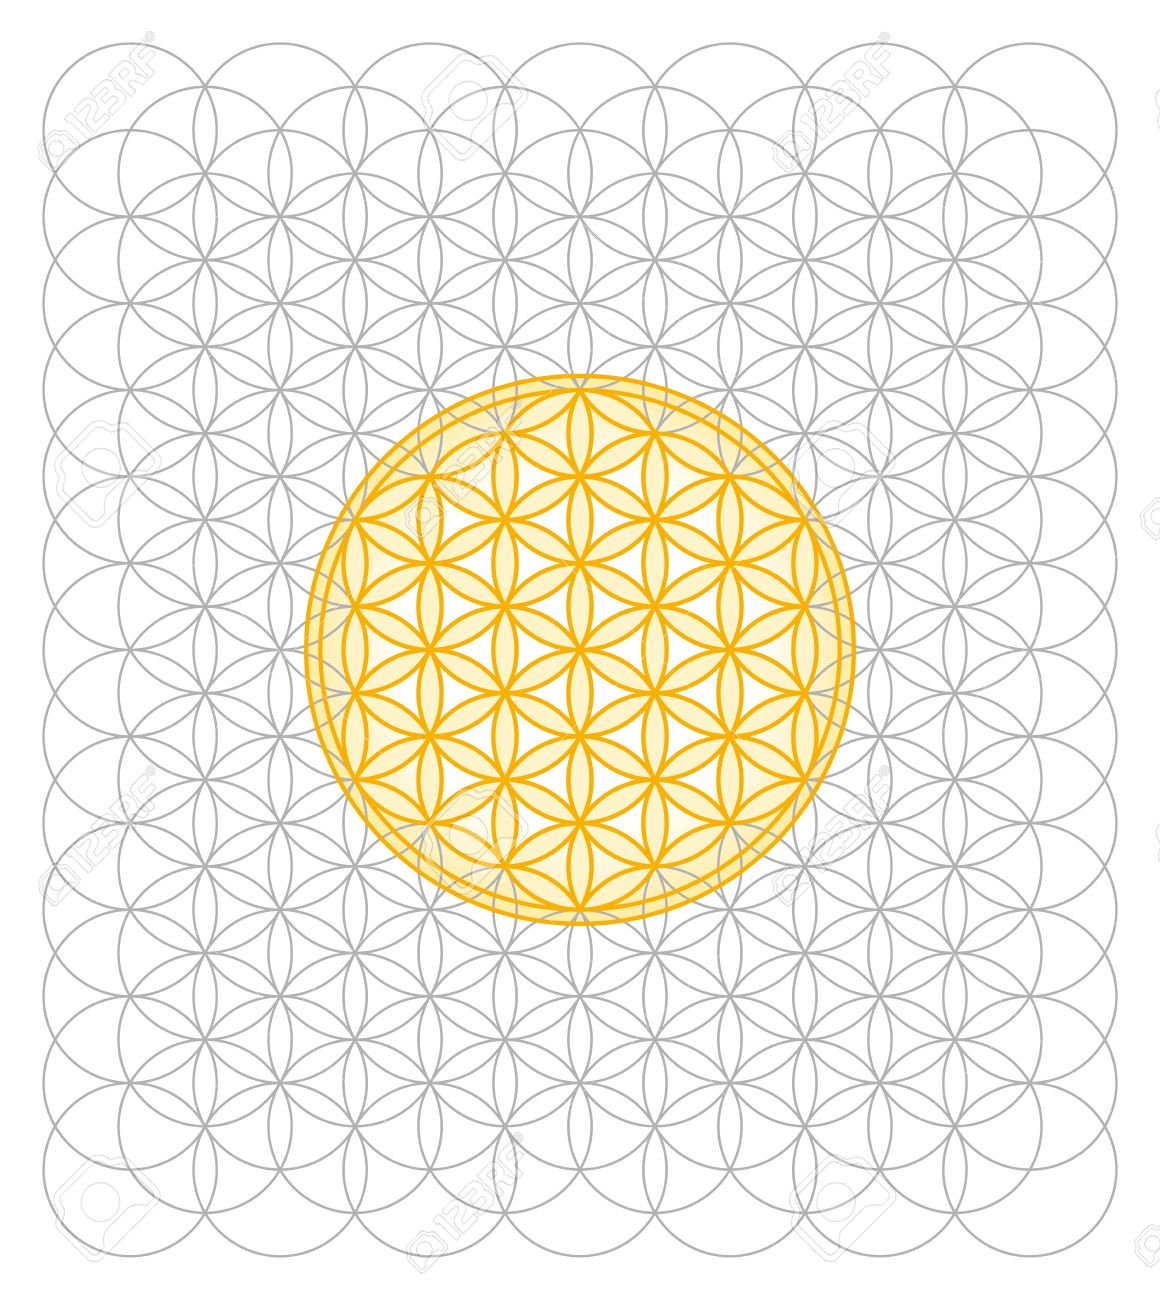 Development of Flower of Life from a sea of circles  Sacred geometry